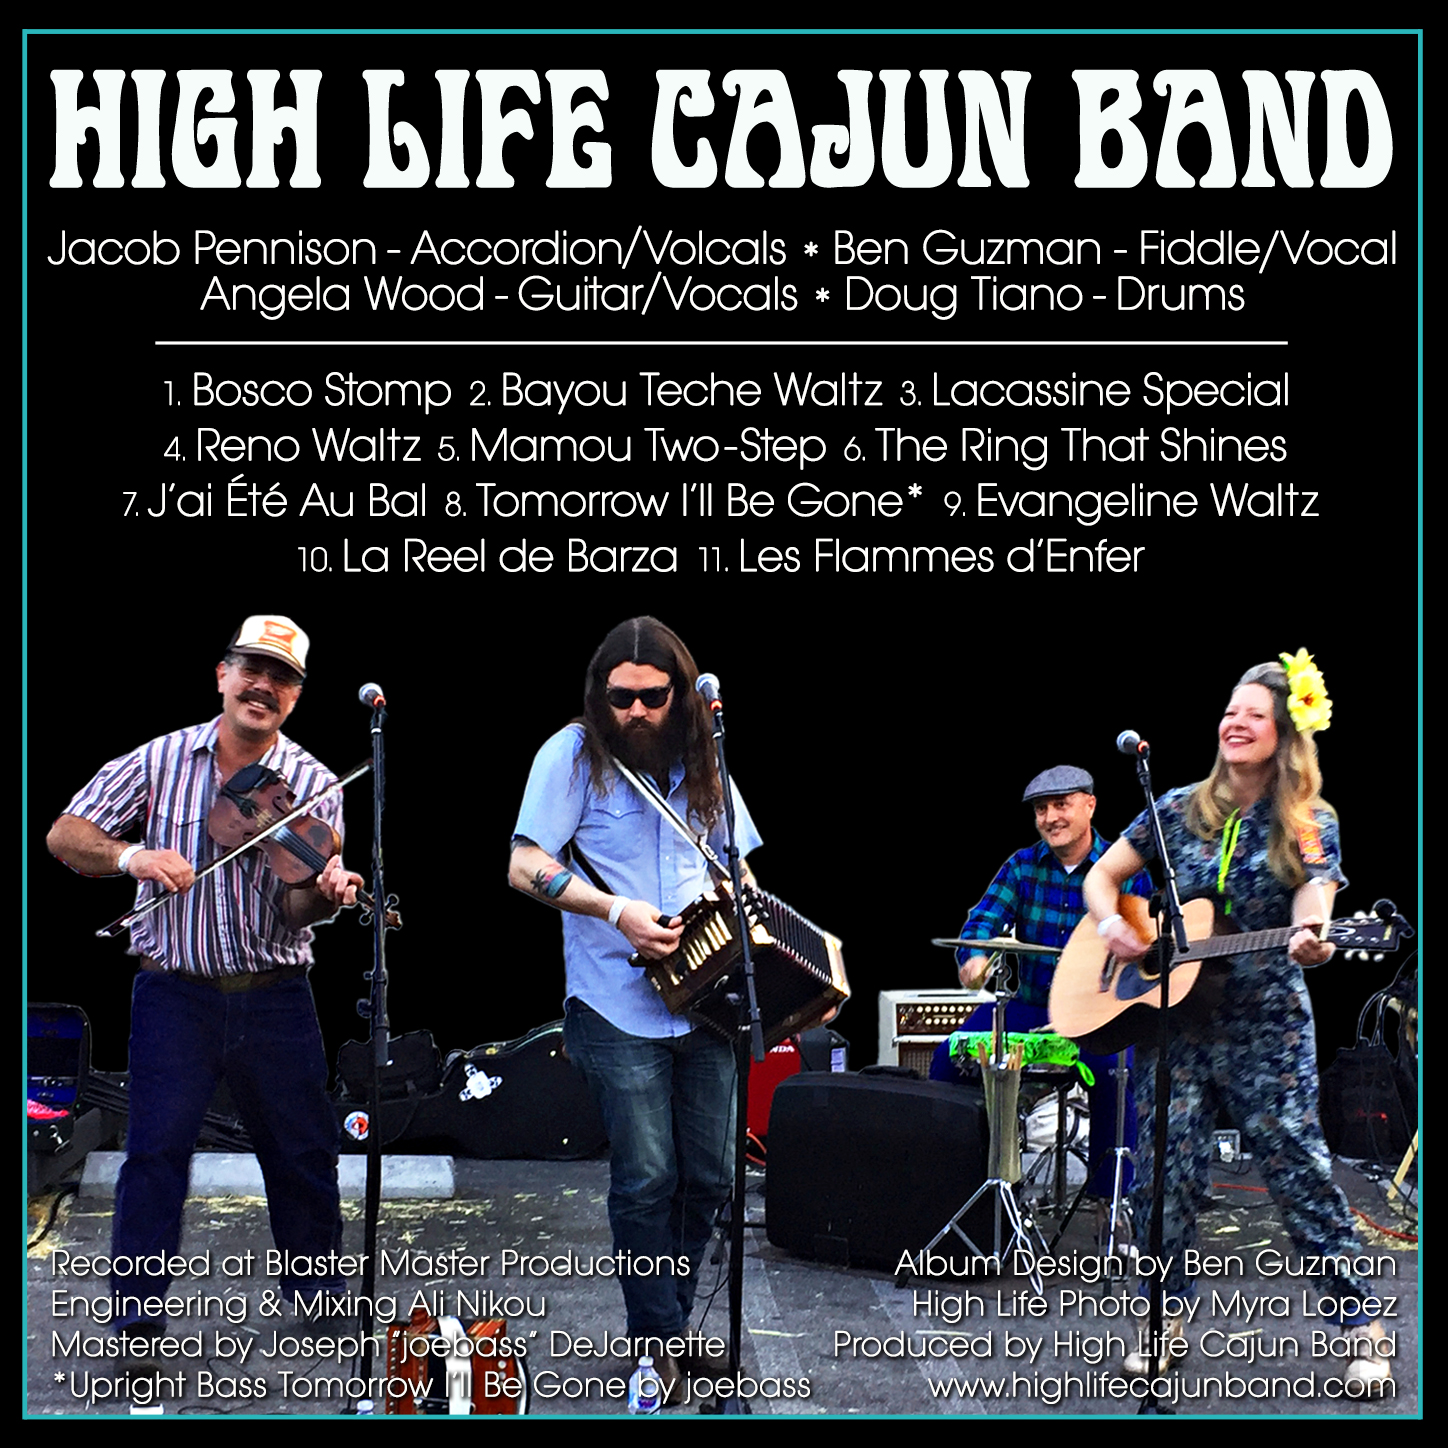 The High Life Cajun Band – Straight Ahead Cajun Dance Music